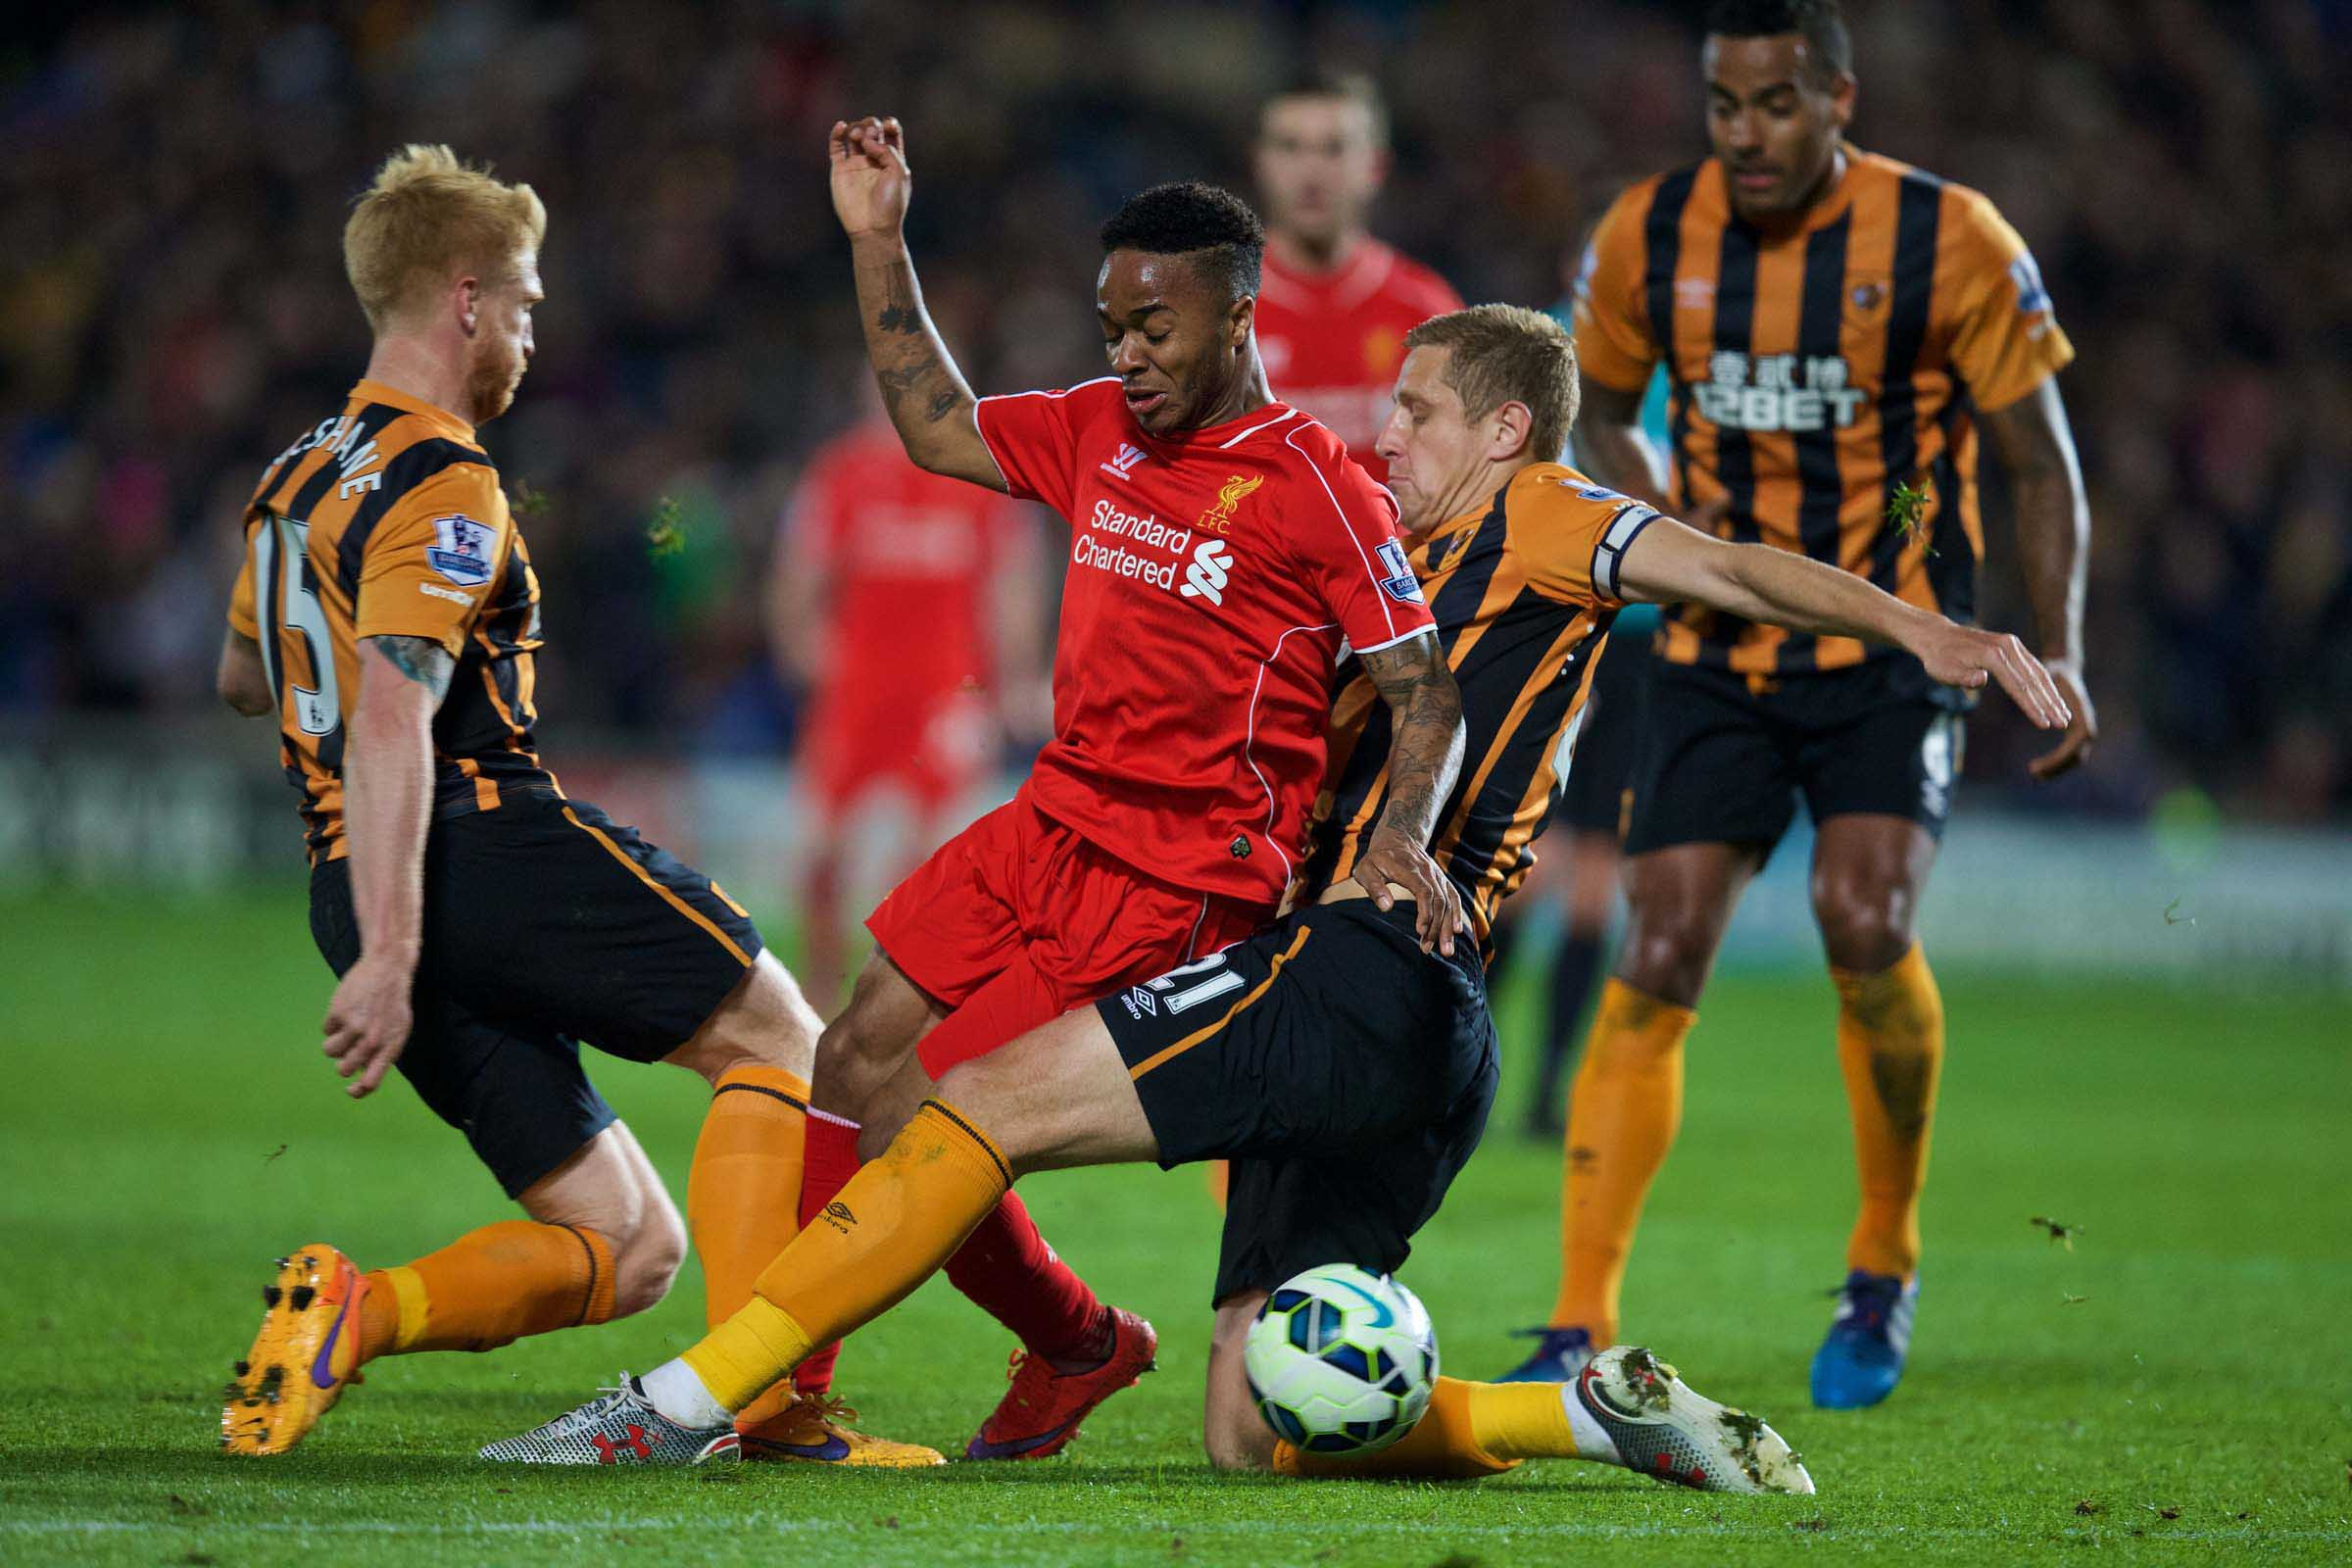 HULL CITY v LIVERPOOL: MATCH REVIEW